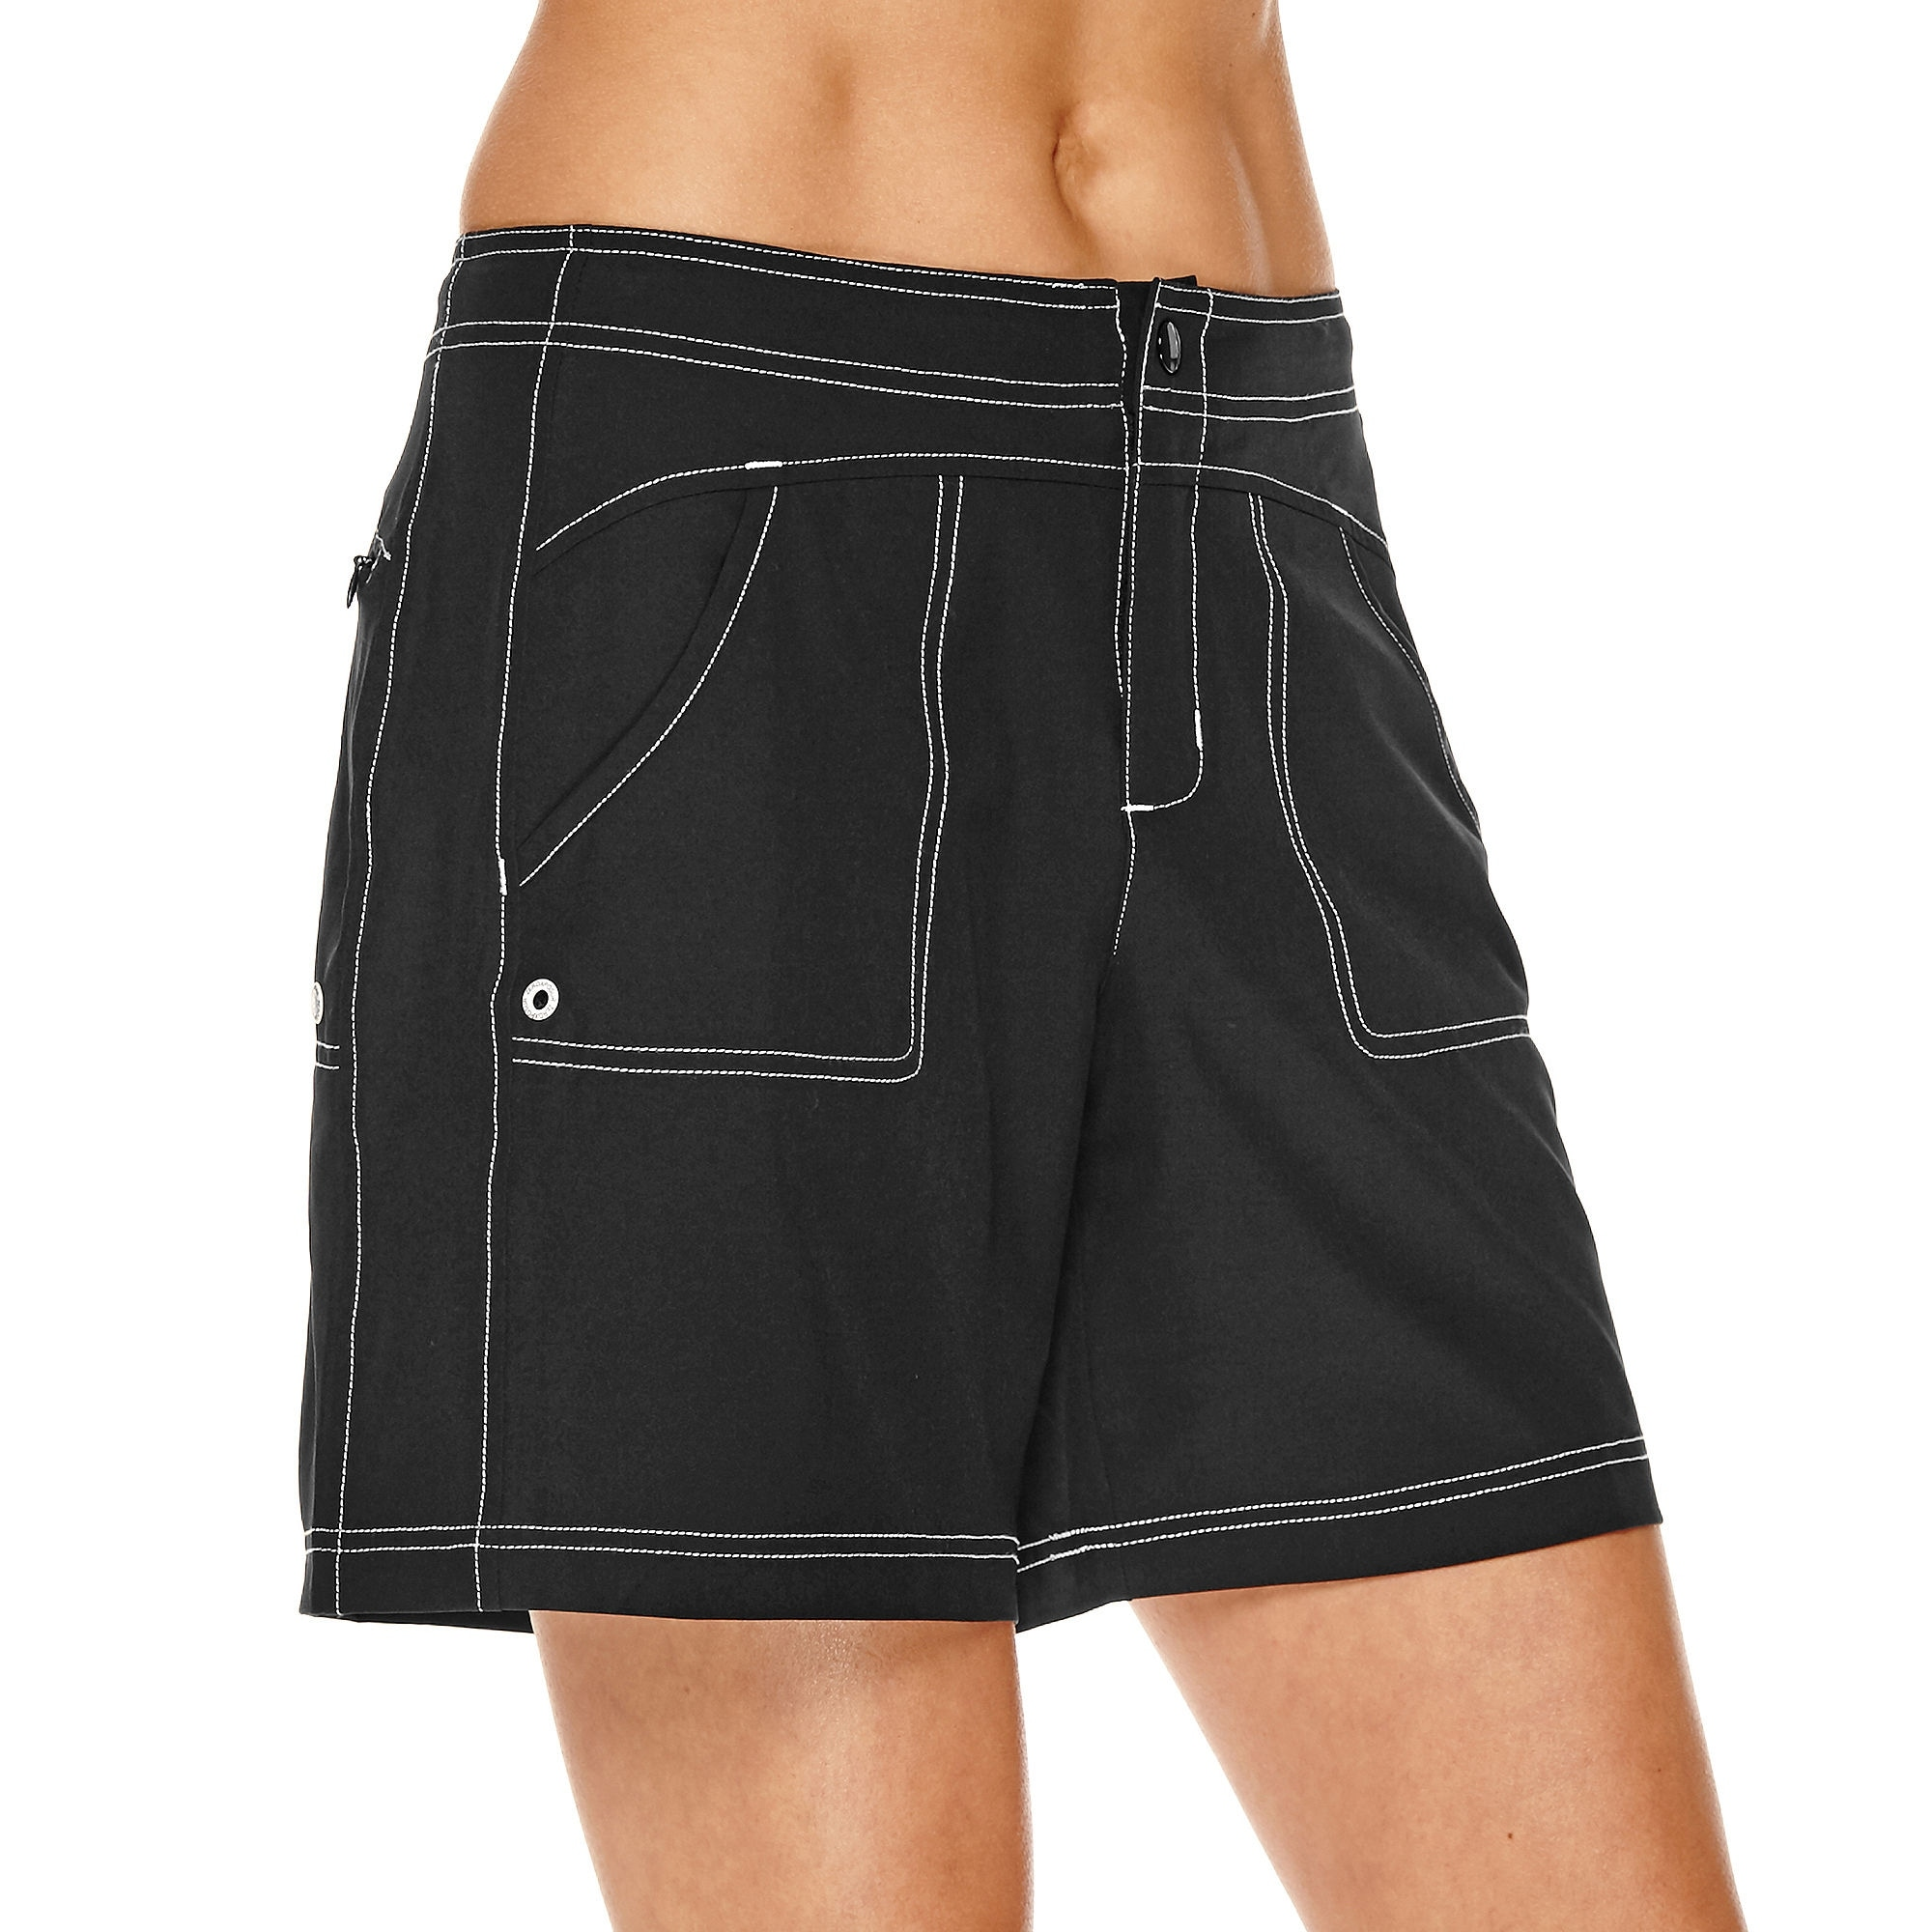 4069275efc Shop Zero Xposur Black White Women's Size 12 Paddle Activewear Shorts -  Free Shipping On Orders Over $45 - Overstock - 27315483